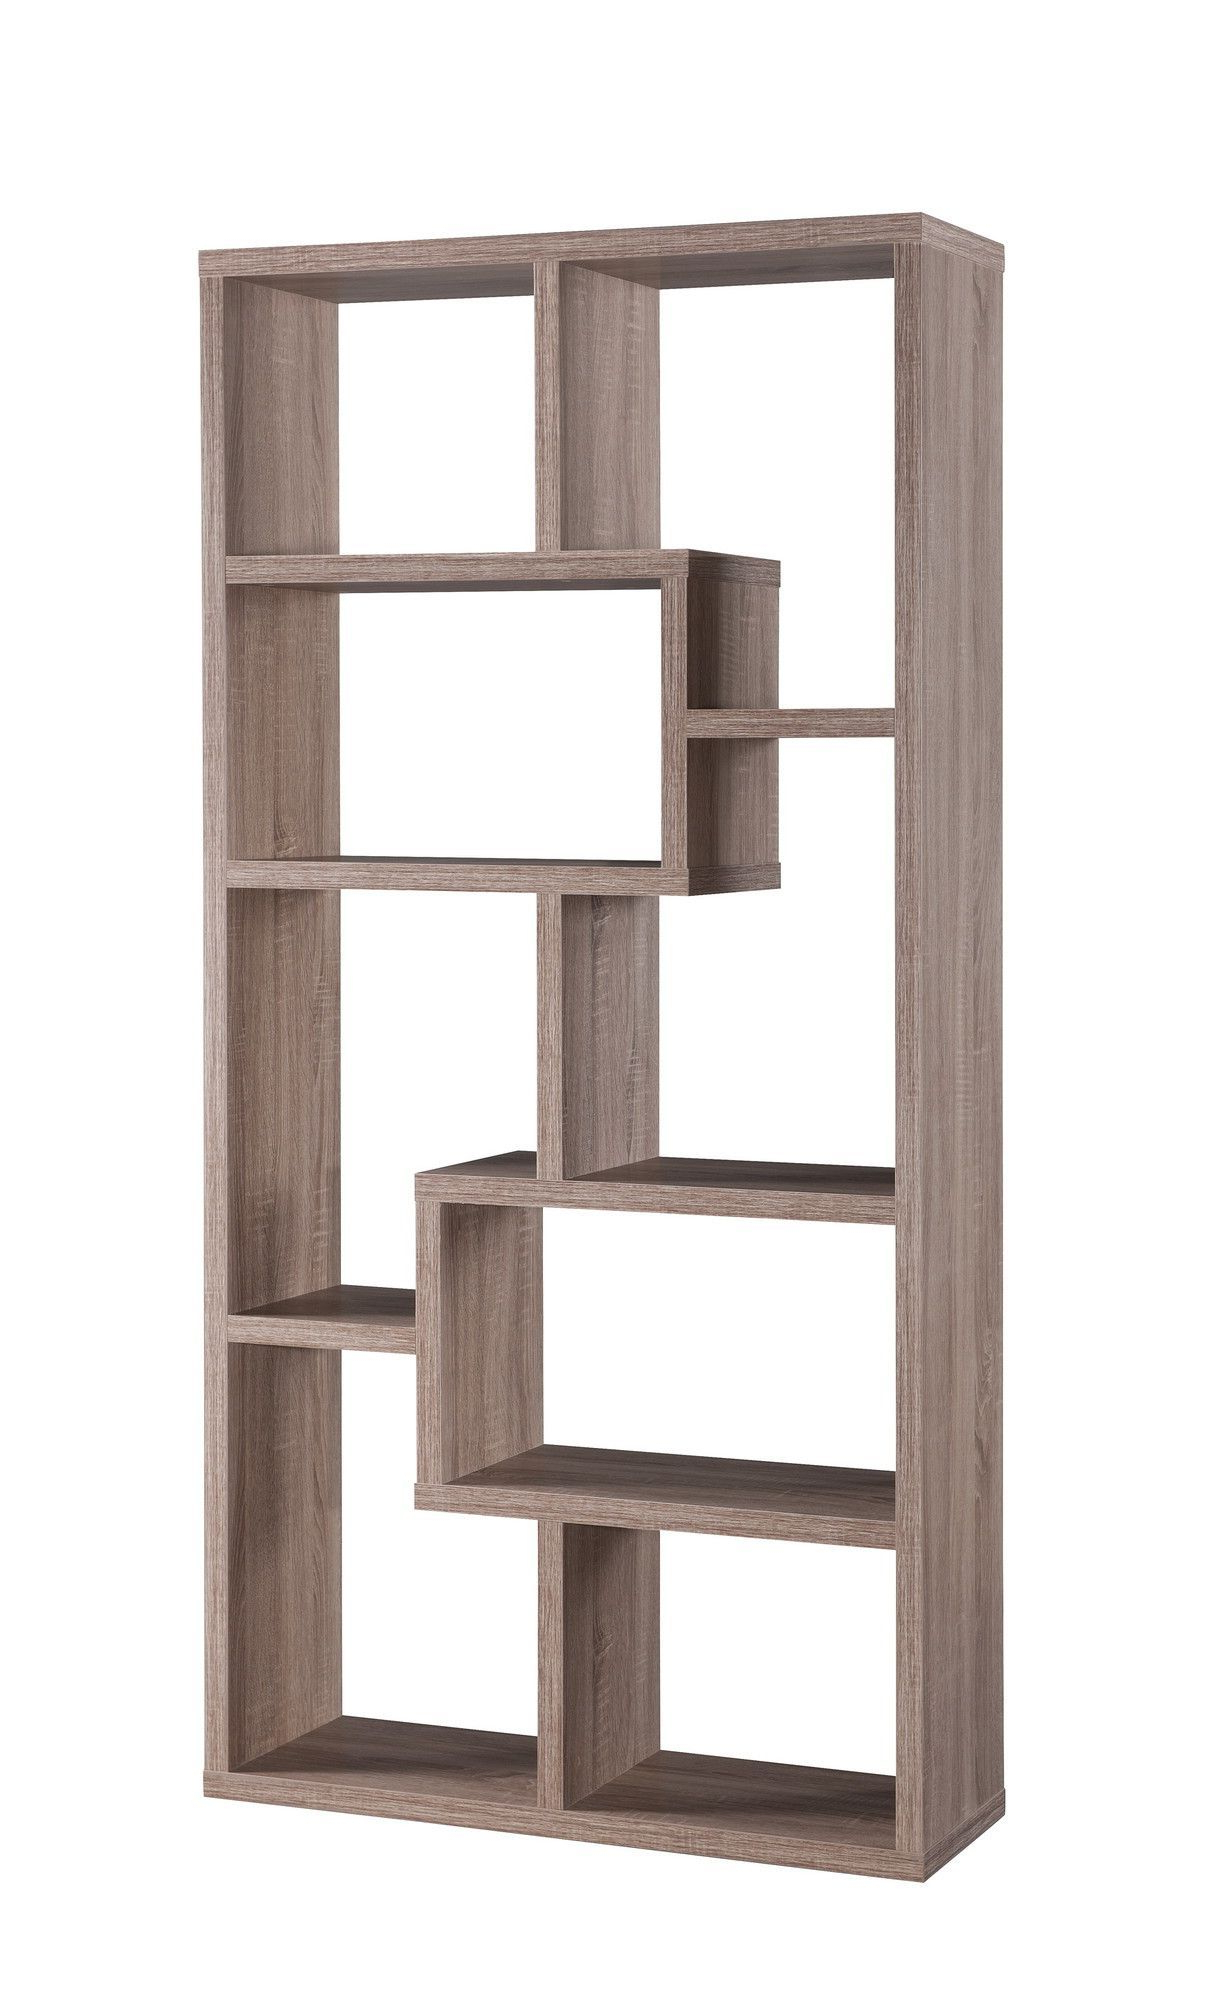 Contemporary Bookcase With Regard To Ansley Geometric Bookcases (View 5 of 20)